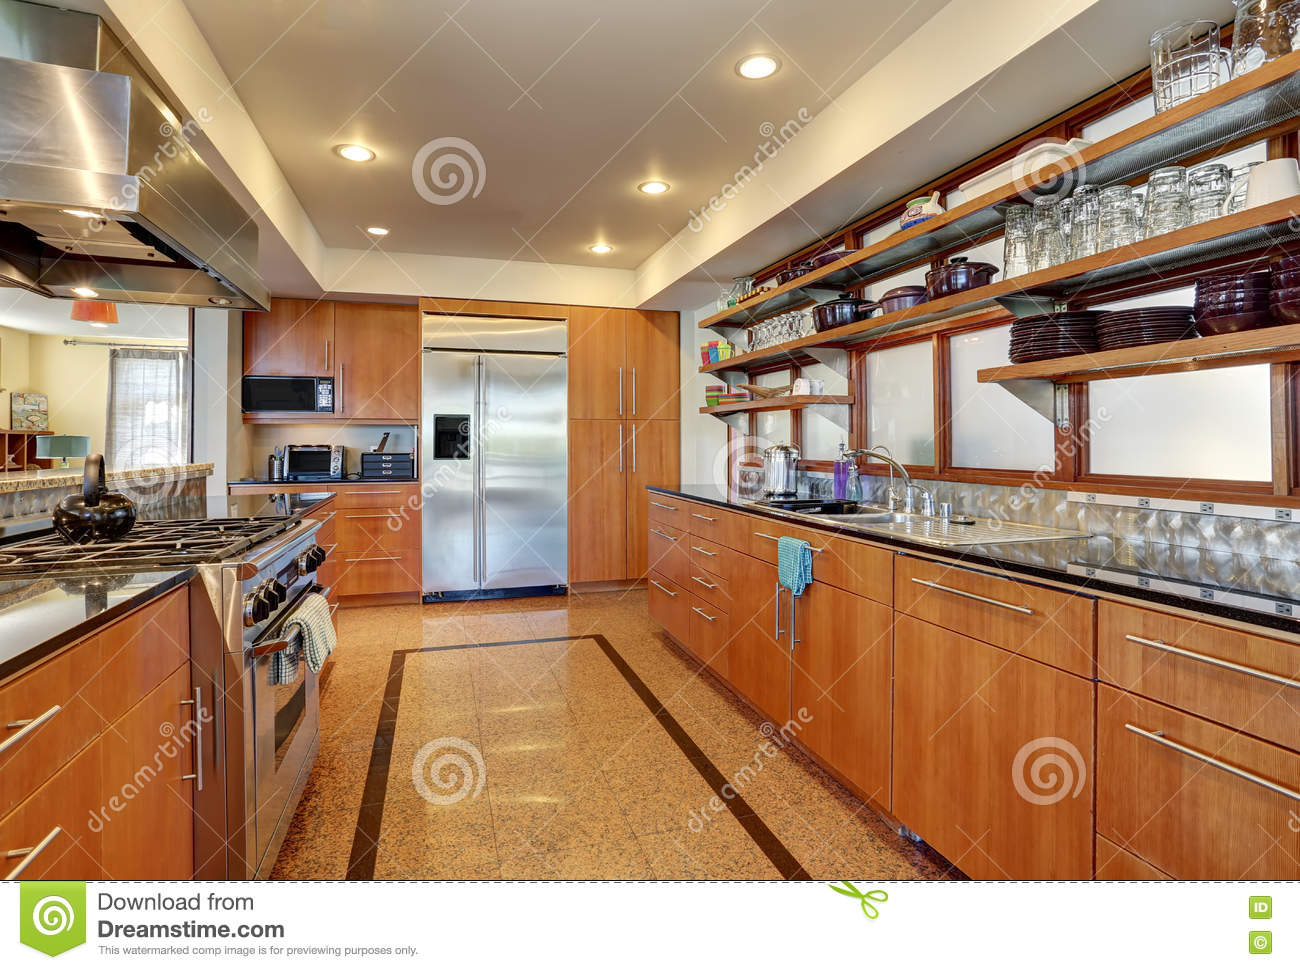 Kitchen Interior With Long Wooden Cabinets And Shelves ...